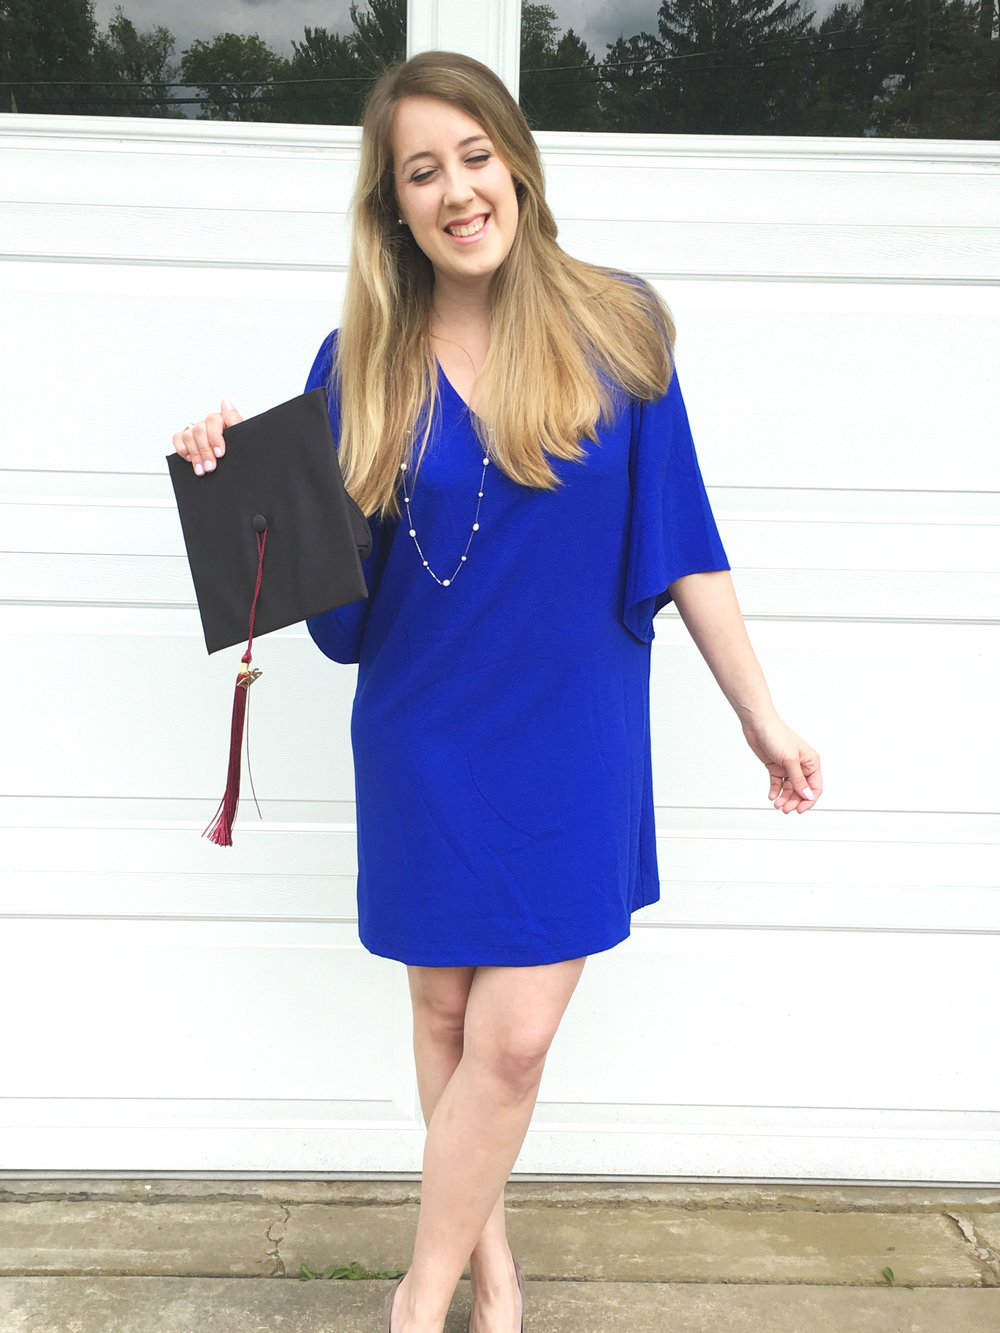 The Perfect Graduation Dress and Tips for New College Grads